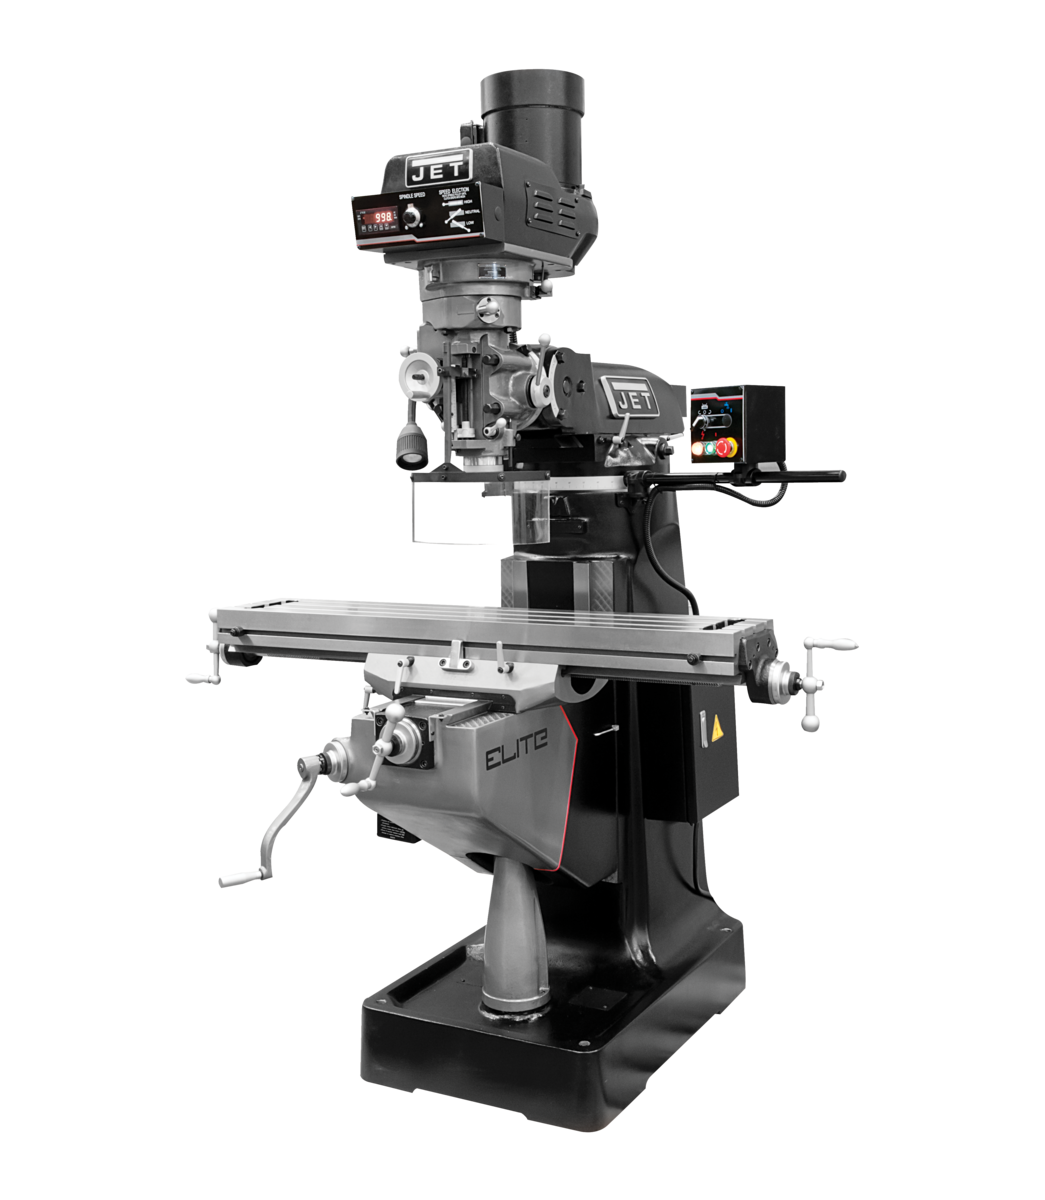 EVS-949 Mill with 2-Axis Newall DP700 DRO and Servo X, Y-Axis Powerfeeds and USA Air Powered Draw Bar